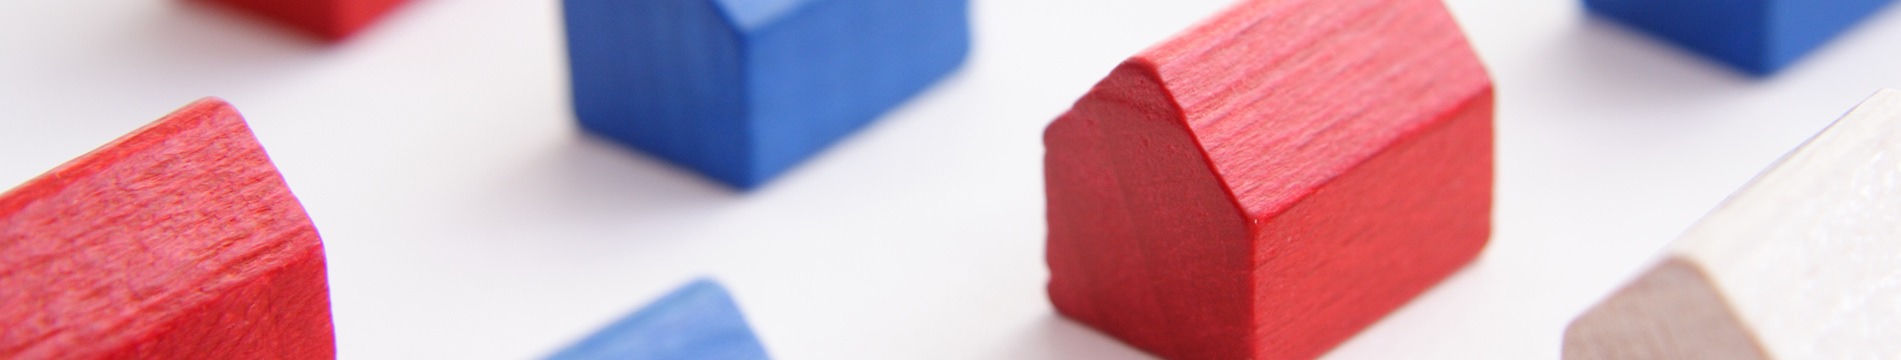 Red, White & Blue Monopoly Houses